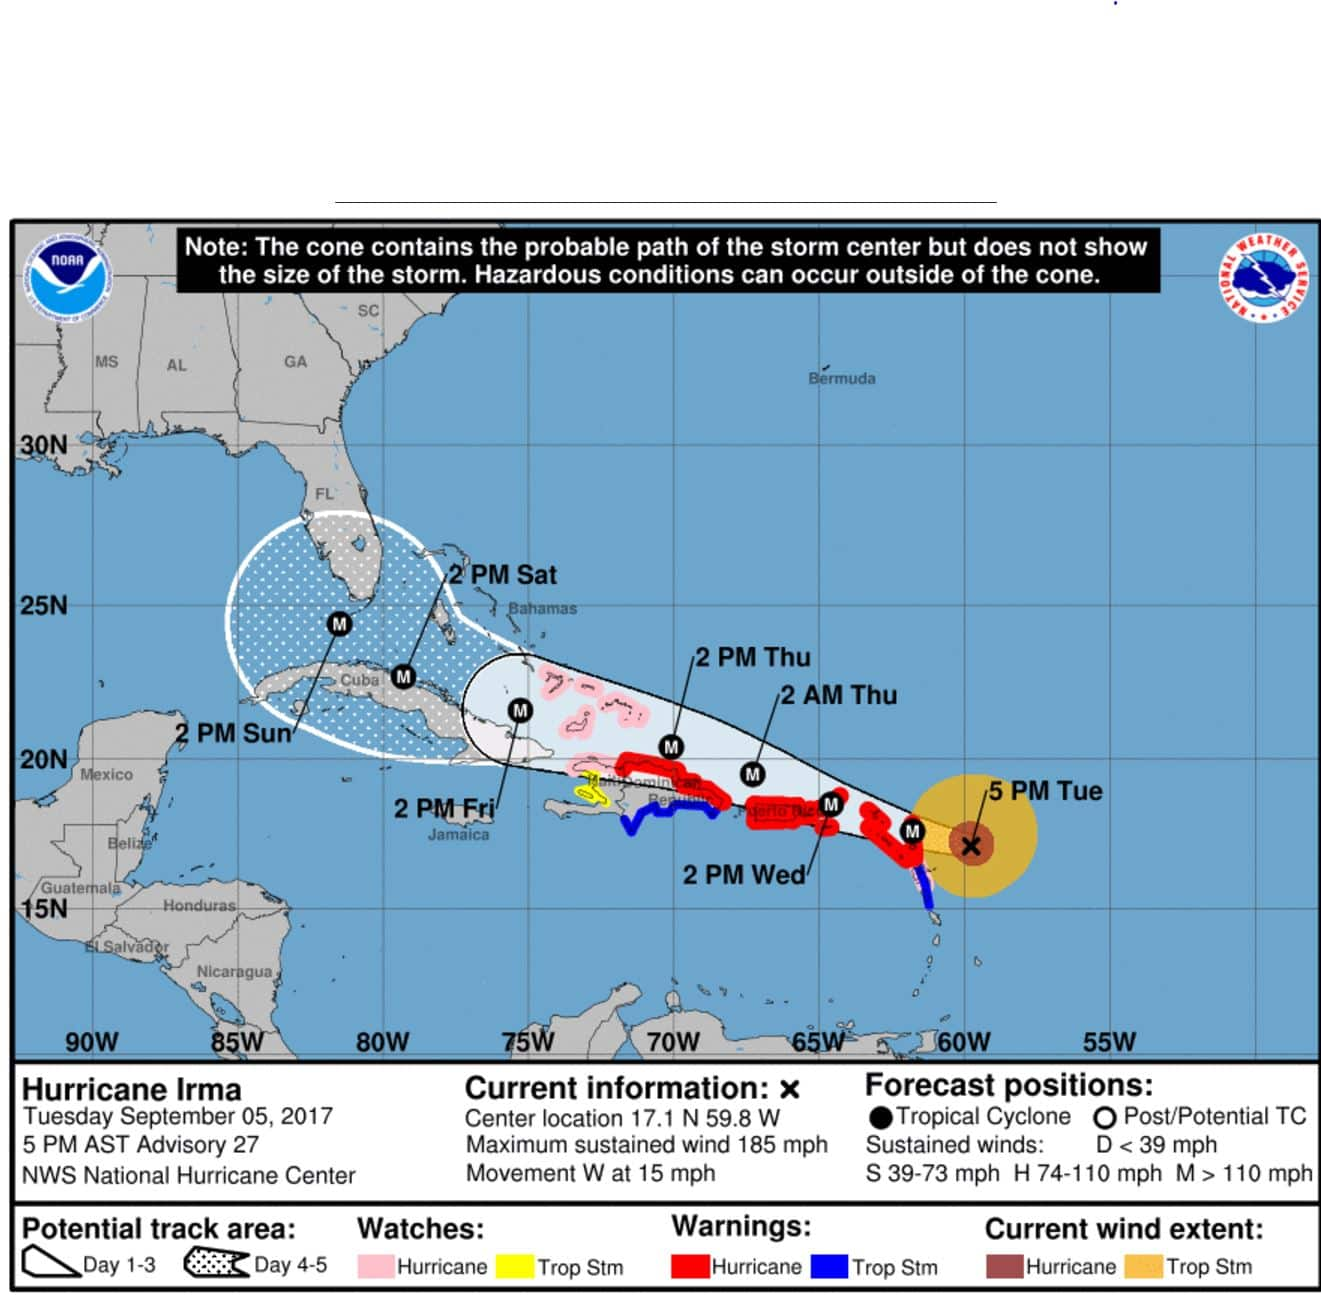 Hurricane Irma Campus Closings - Keiser University on keiser university alumni, lively technical center campus map, berkeley college campus map, city college campus map, jwu providence campus map, eckerd college campus map, stanford campus map, daemen college campus map, keiser university blackboard, collier county campus map, daytona state college campus map, valencia college campus map, edward waters college campus map, keiser university tuition, keiser university certificate programs, keiser university housing, keiser university academic calendar, keiser university campus life, flagler college campus map, palm beach state college campus map,